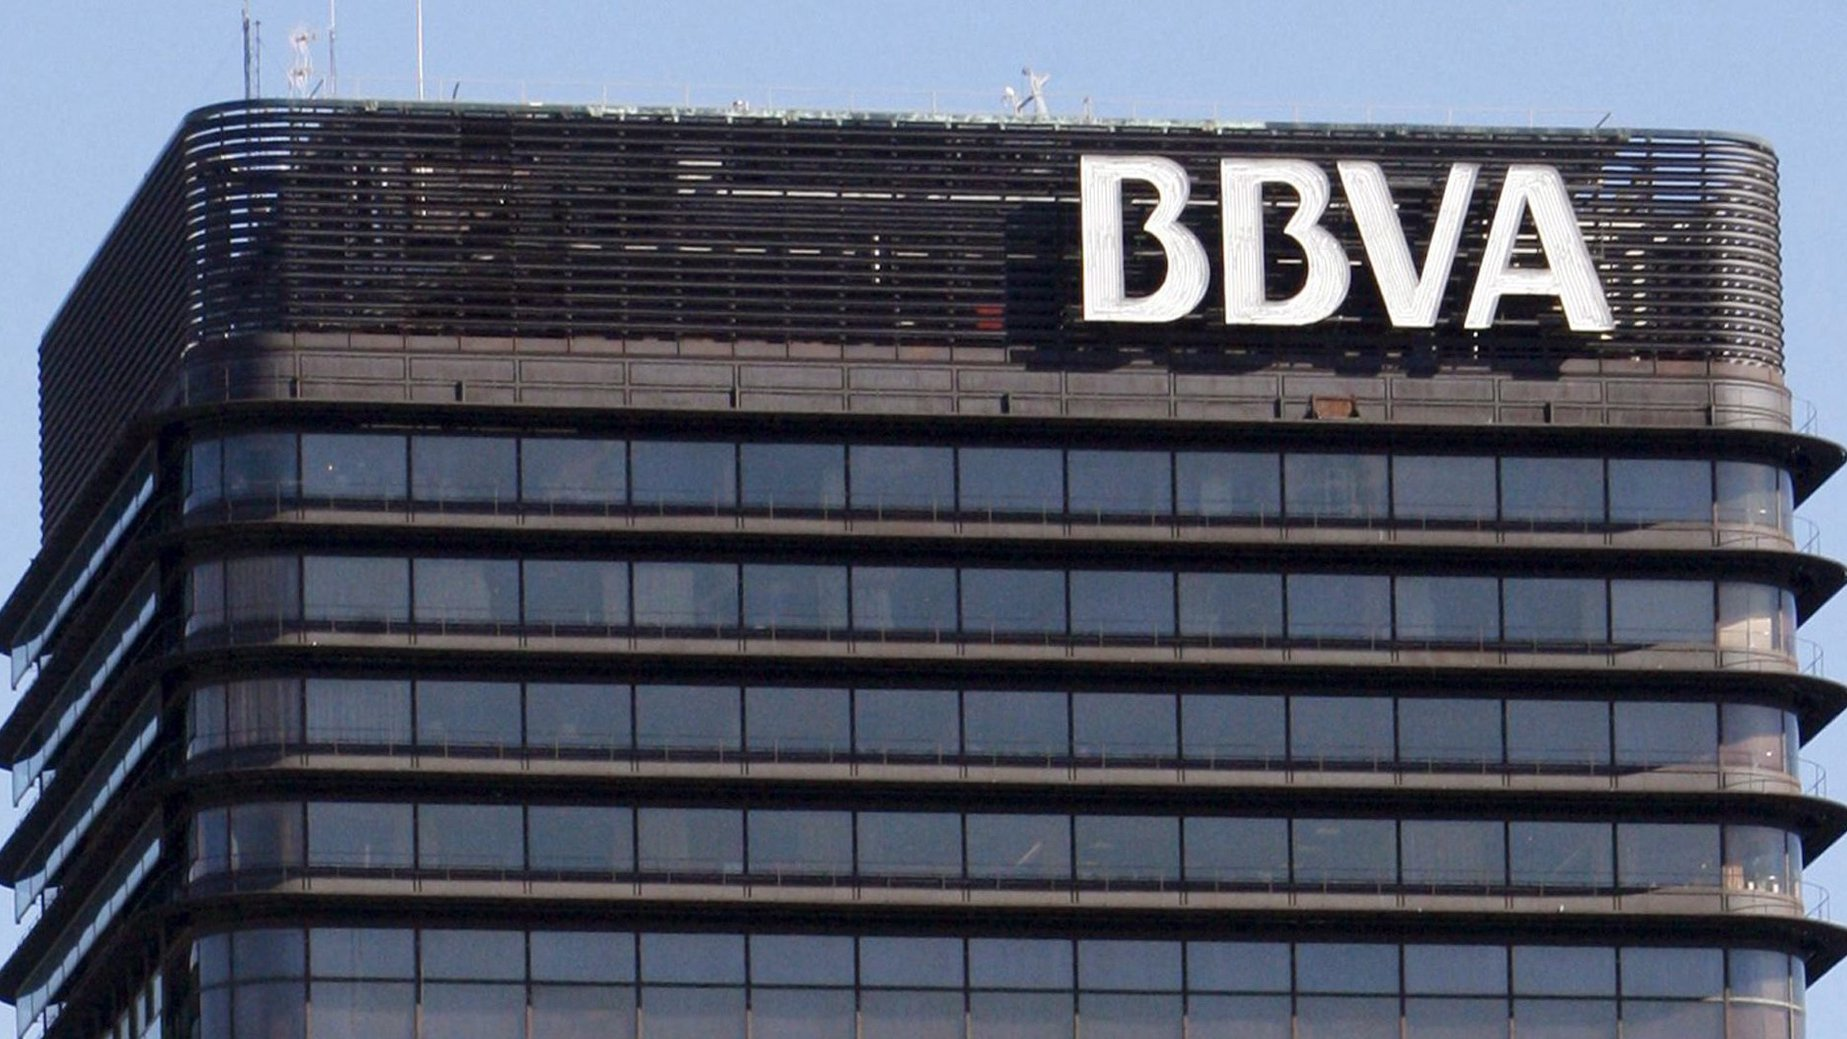 epa02259045 (FILE) A file photograph showing the logo on the headquarters of the Spanish bank BBVA in Madrid, Spain on 02 April 2008. The BBVA, as well as all other Spanish banks, passed a EU-wide stress-testing exercise conducted by the Committee of European Banking Supervisors (CEBS) and published on 23 July 2010. Four Spanish savings-and-loan banks, however, failed the stress test.  EPA/MANUEL H DE LEON